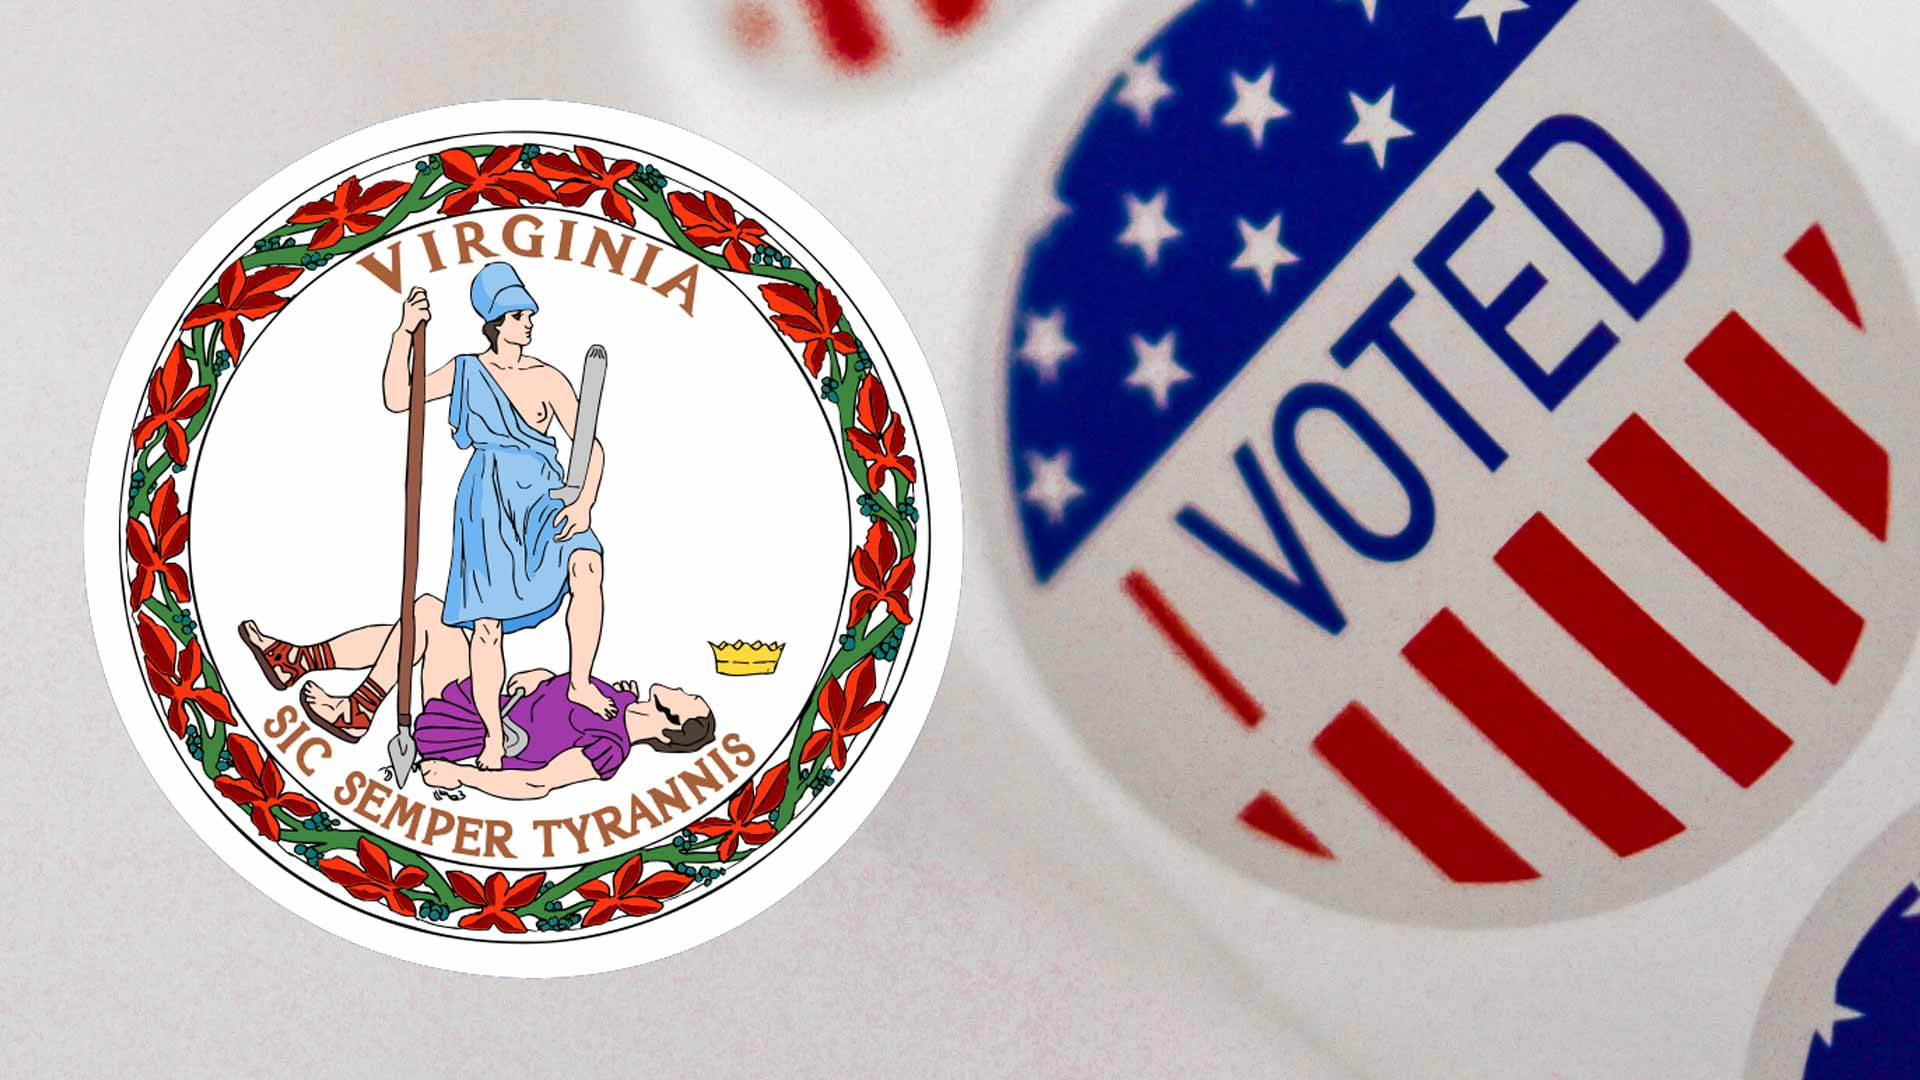 Landmark Files Petition to Have Virginia Provide Voter Information to Its County Registrars